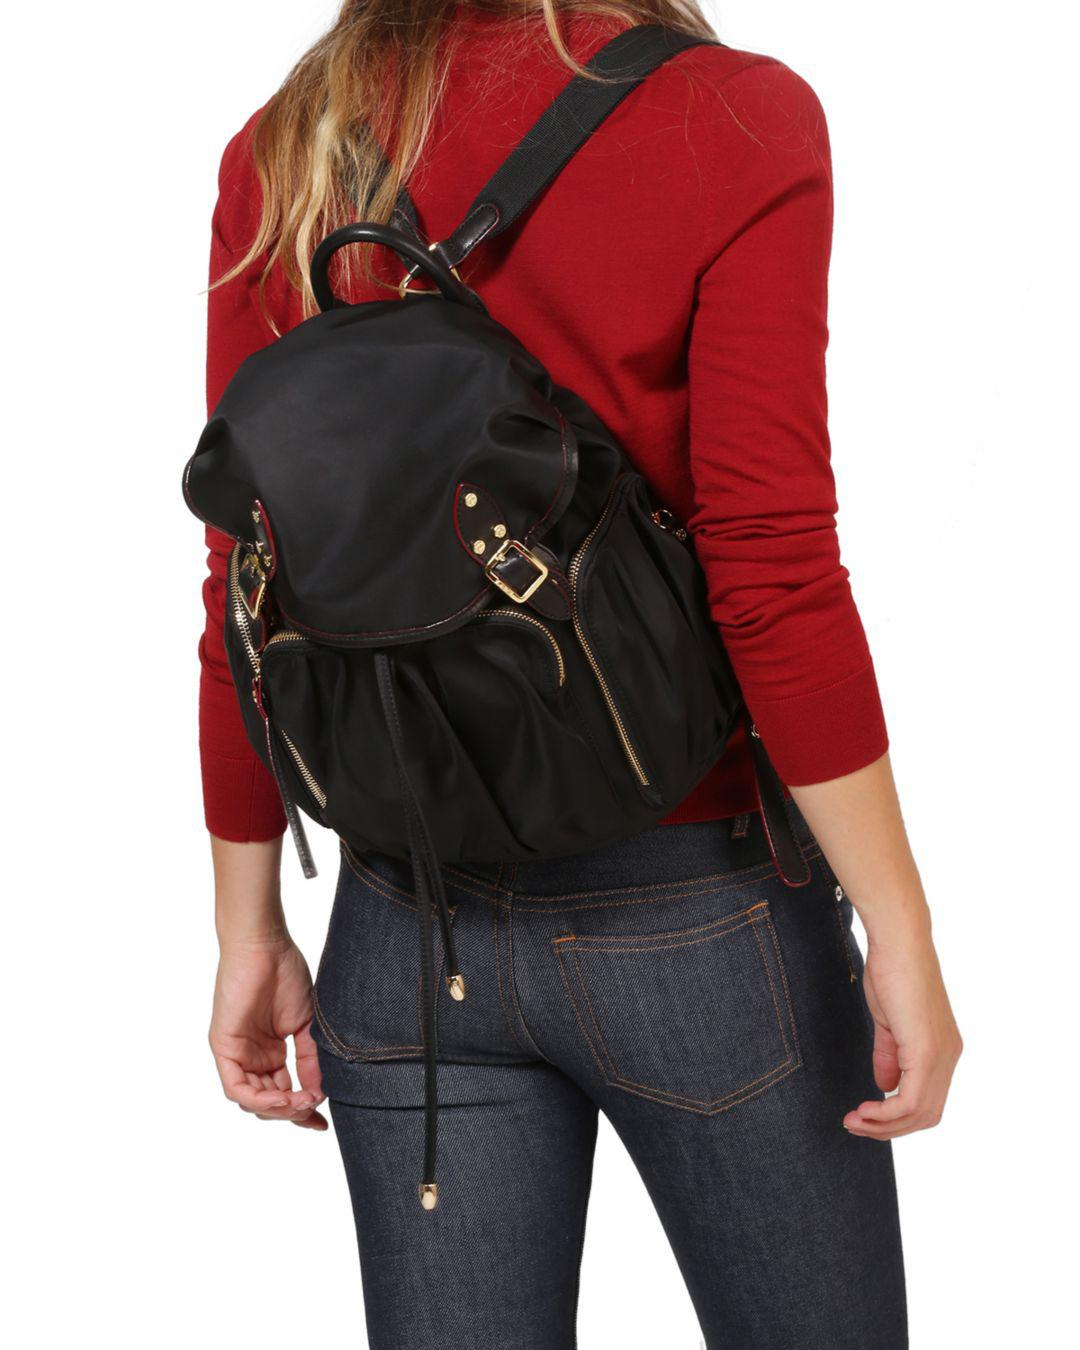 cf25ee7726c Details about NWT 385 MZ WALLACE Marlena Backpack Bag Carmine RED